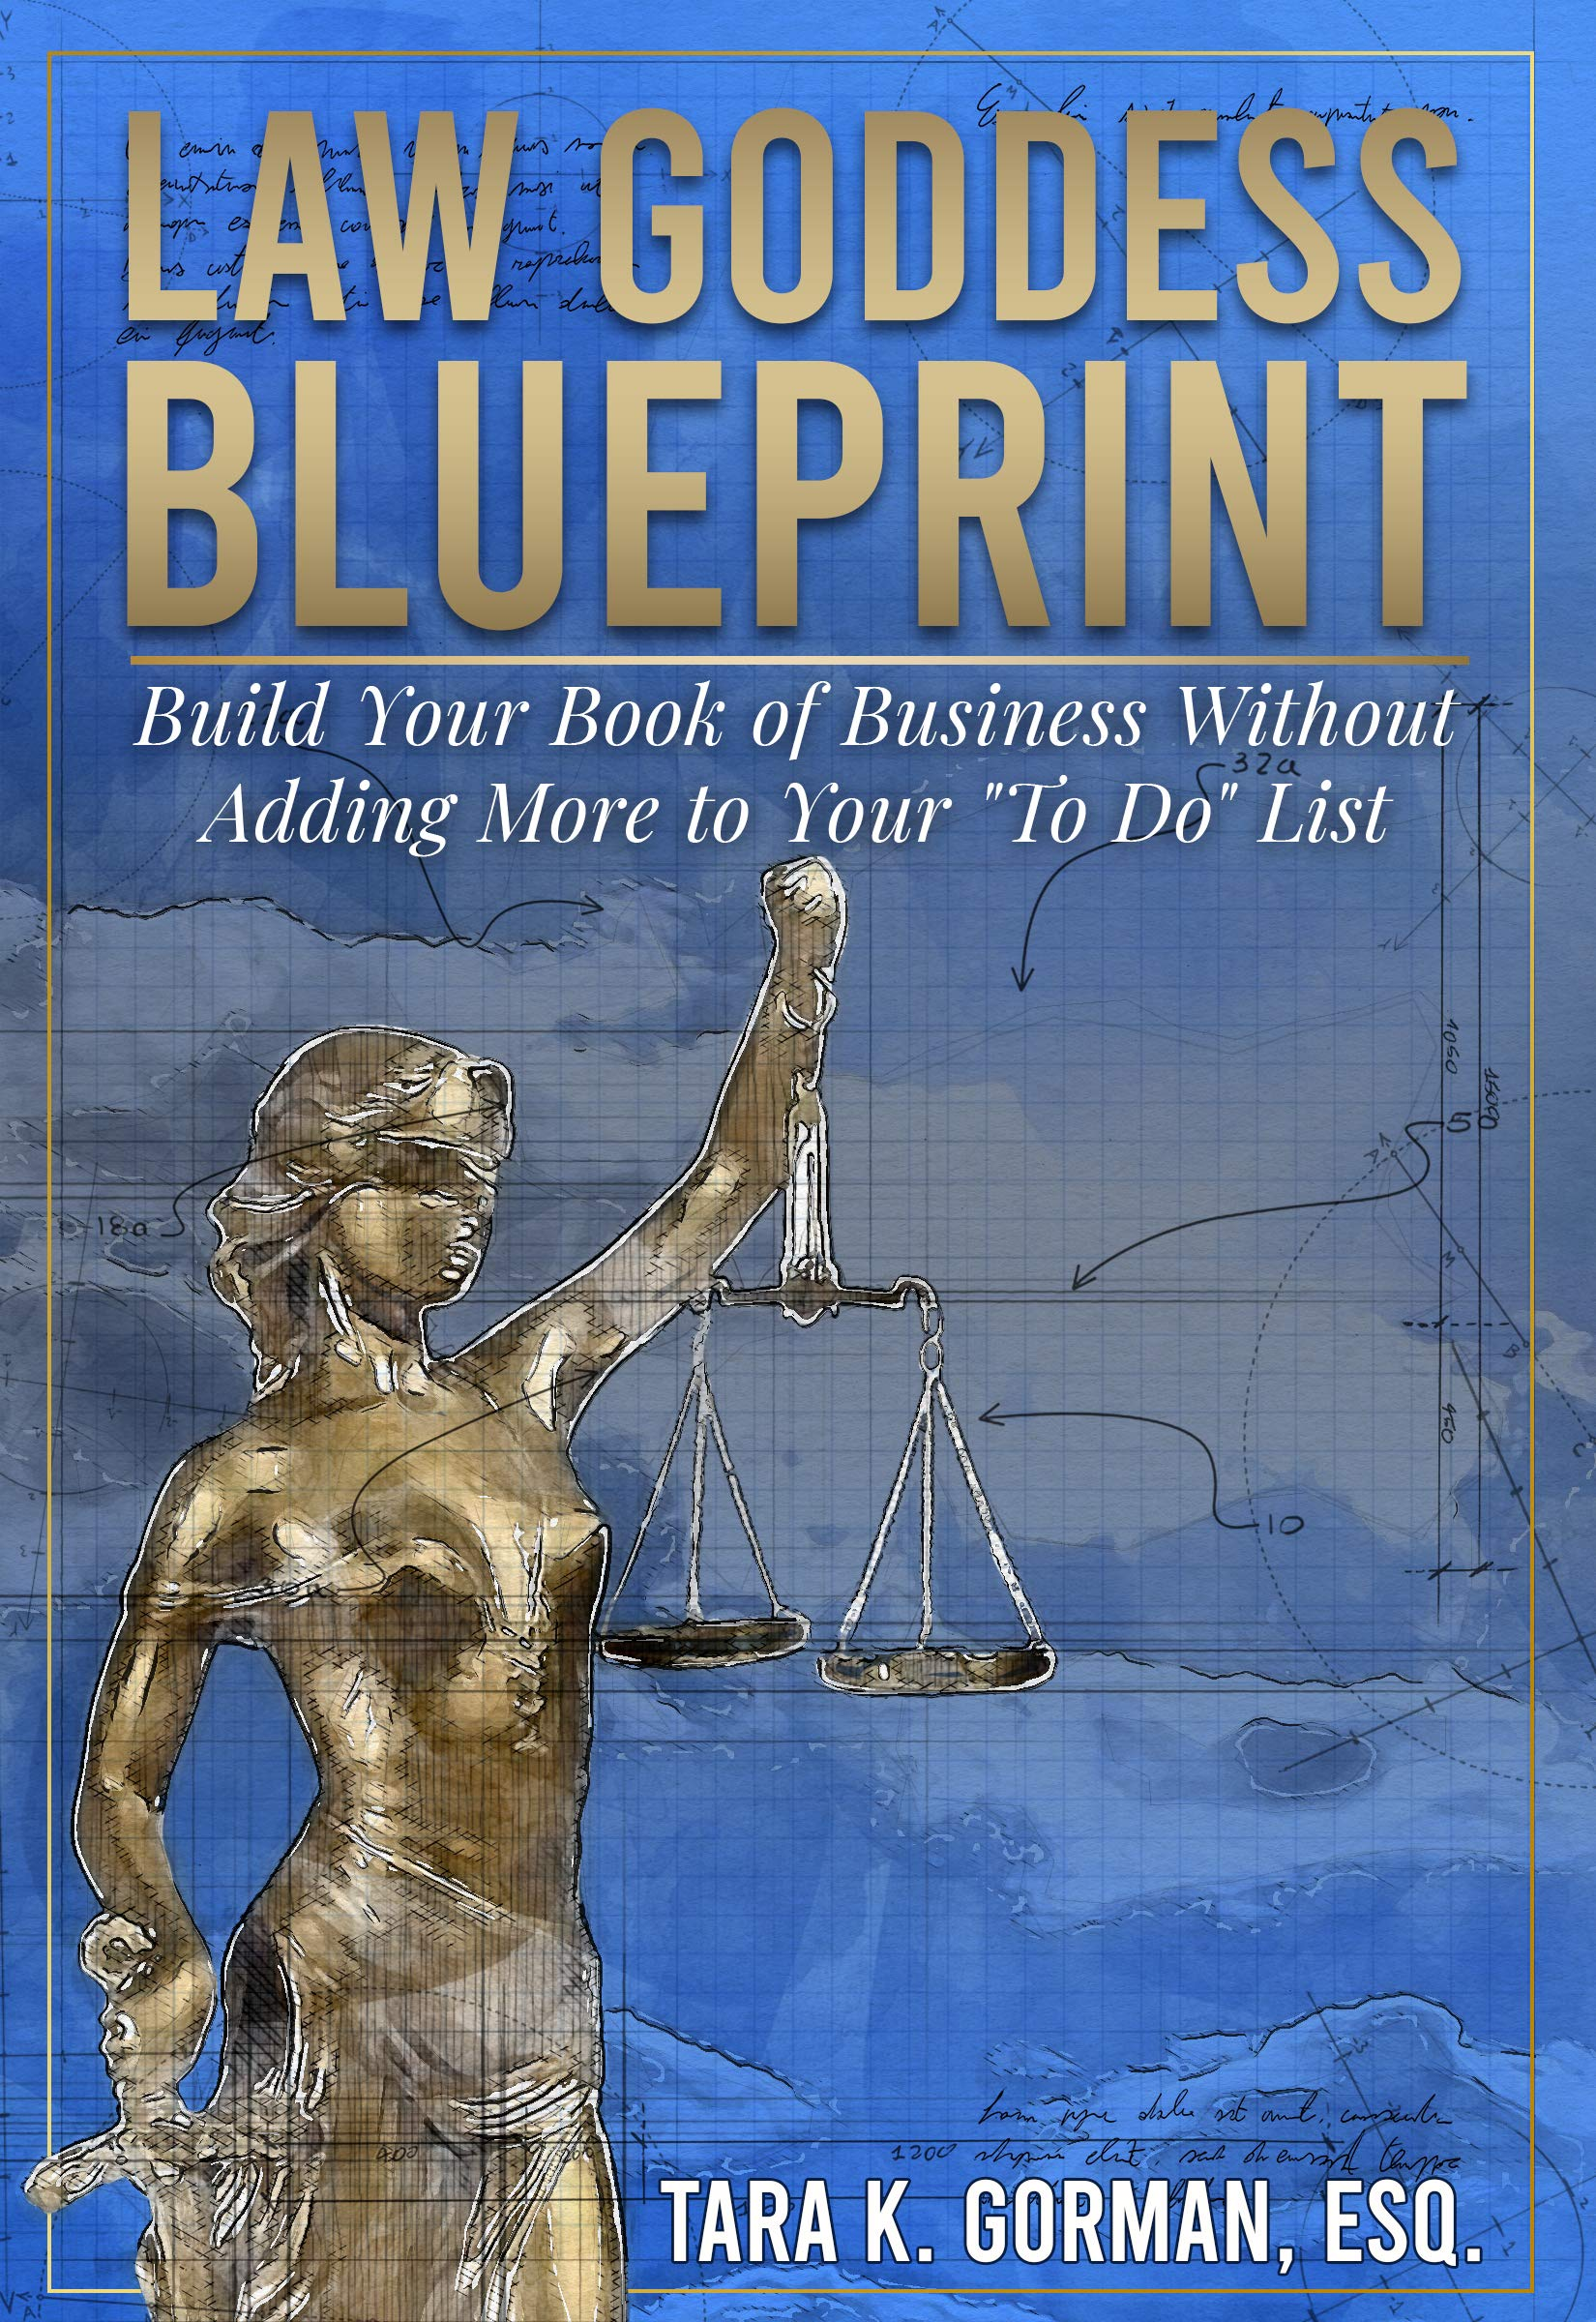 Law Goddess Blueprint: Build Your Book of Business Without Adding More to Your